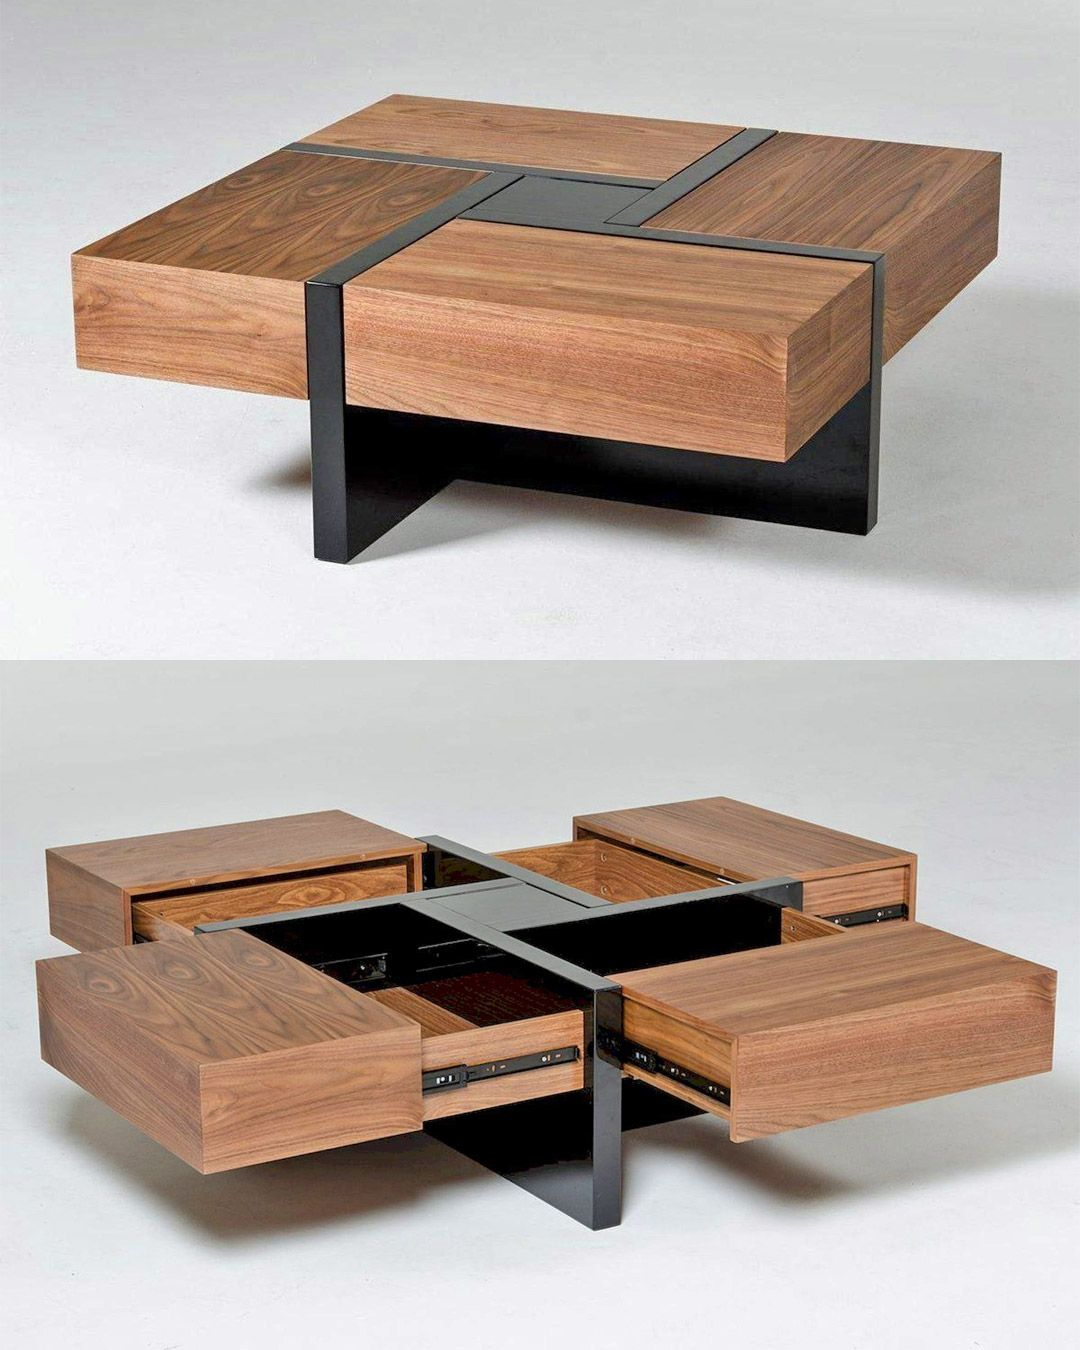 This Beautiful Wooden Coffee Table Has 4 Secret Drawers That Make For A Really Cool Design Coffee Table Wood Wood Table Design Coffee Table With Drawers [ 1350 x 1080 Pixel ]